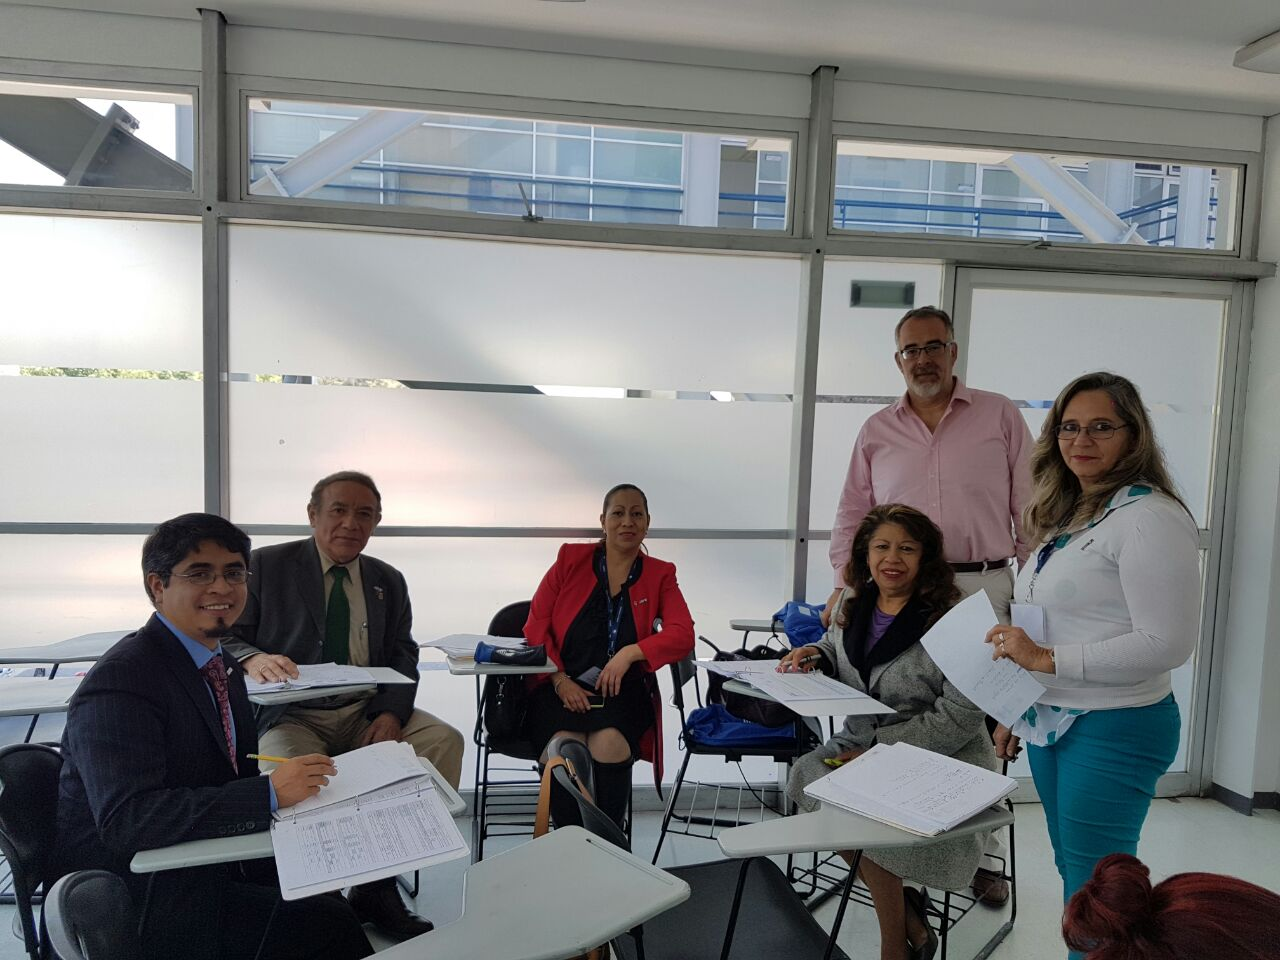 Chilean attorney Leonardo Moreno leads a small group of UNAM law professors through an oral adversarial skills practice session.